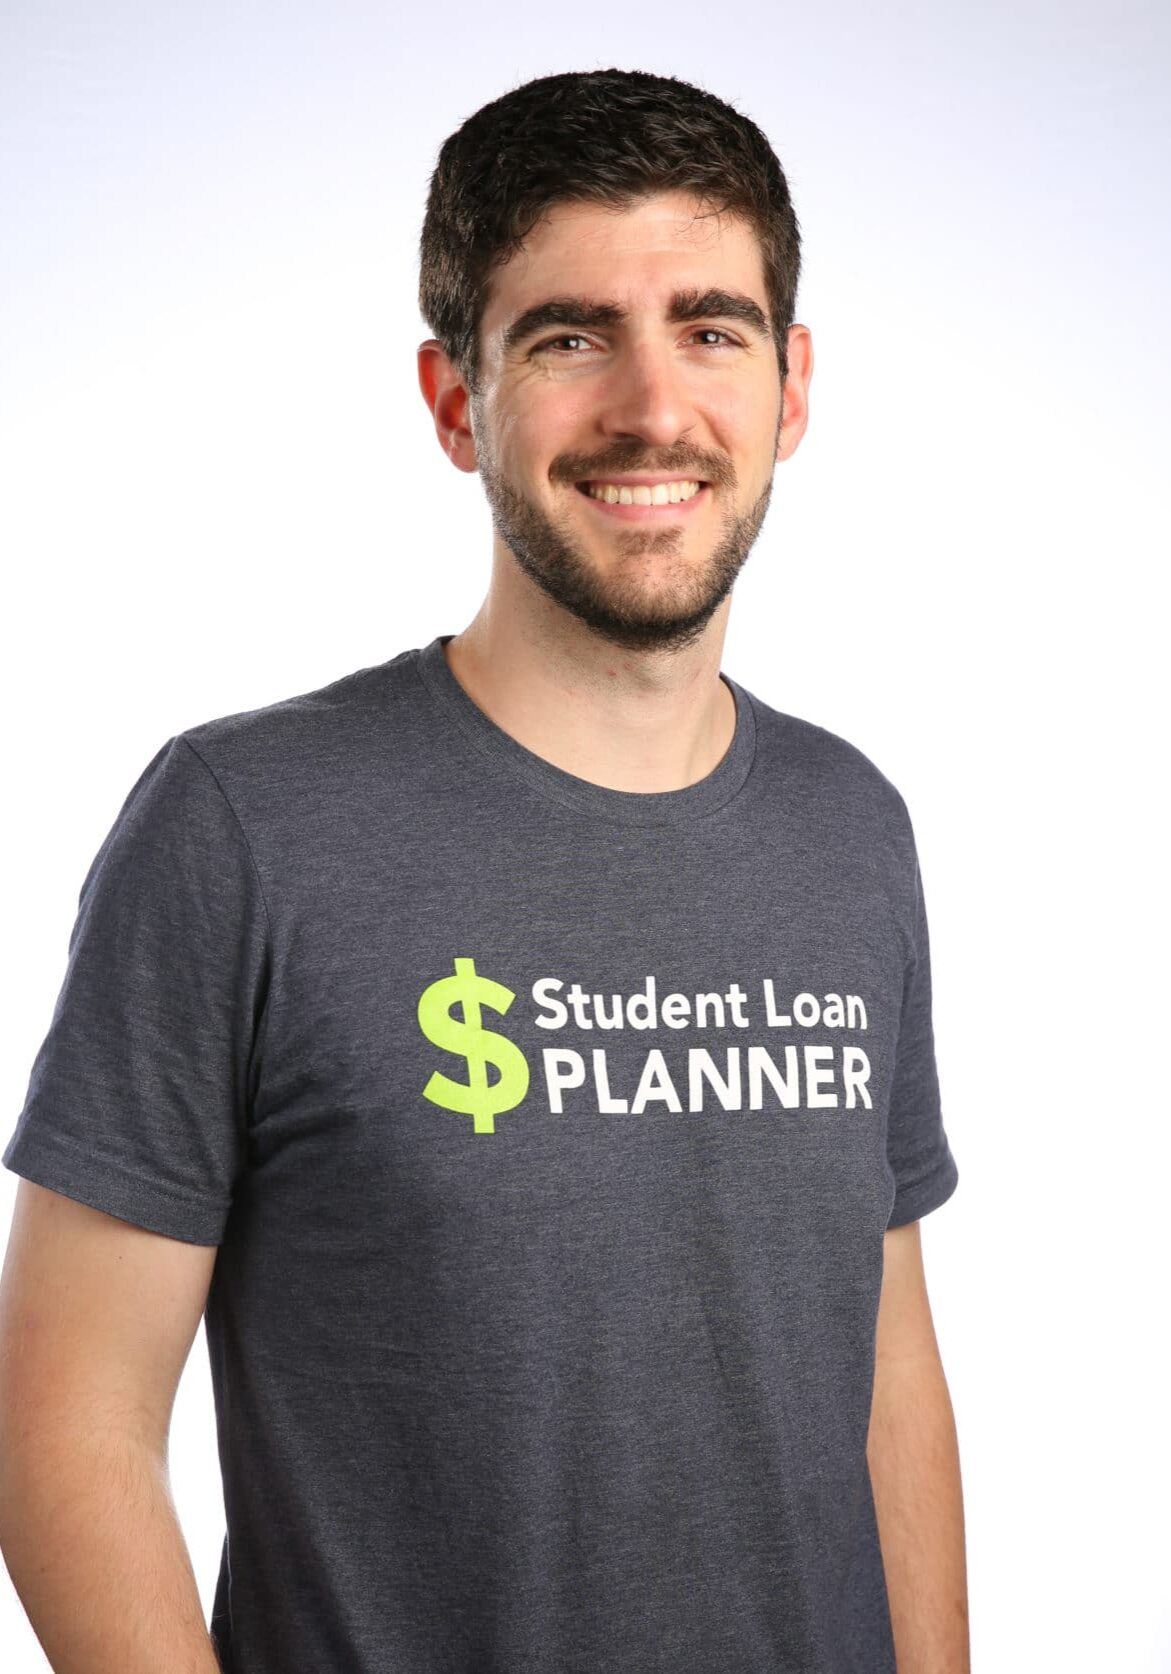 Travis Student Loan Planner Founder